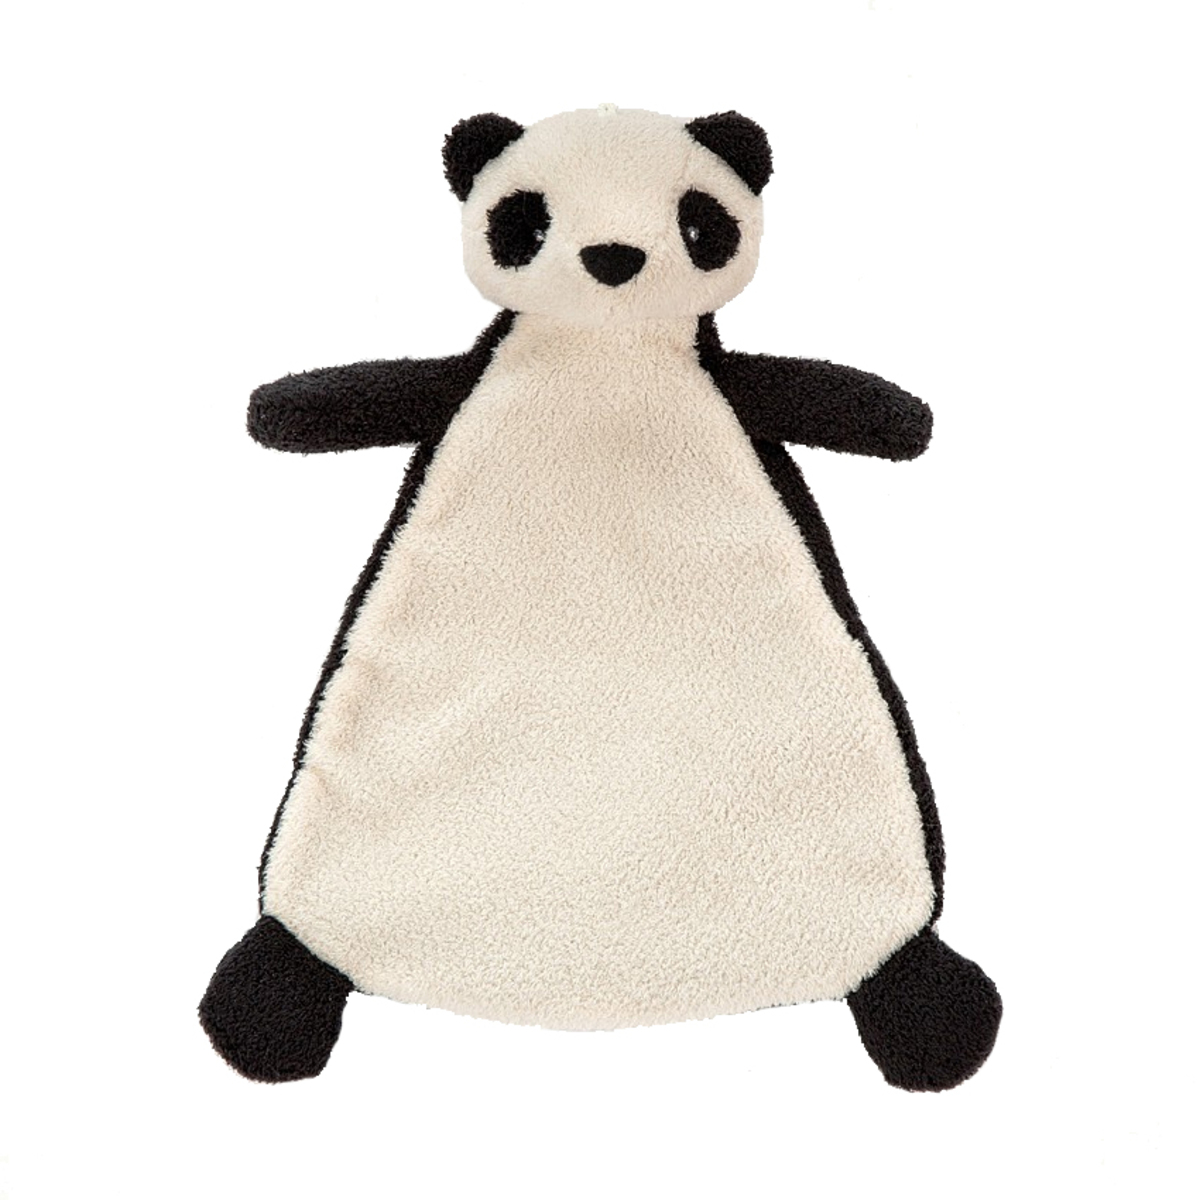 Doudou Pippet Panda Soother Pippet Panda Soother